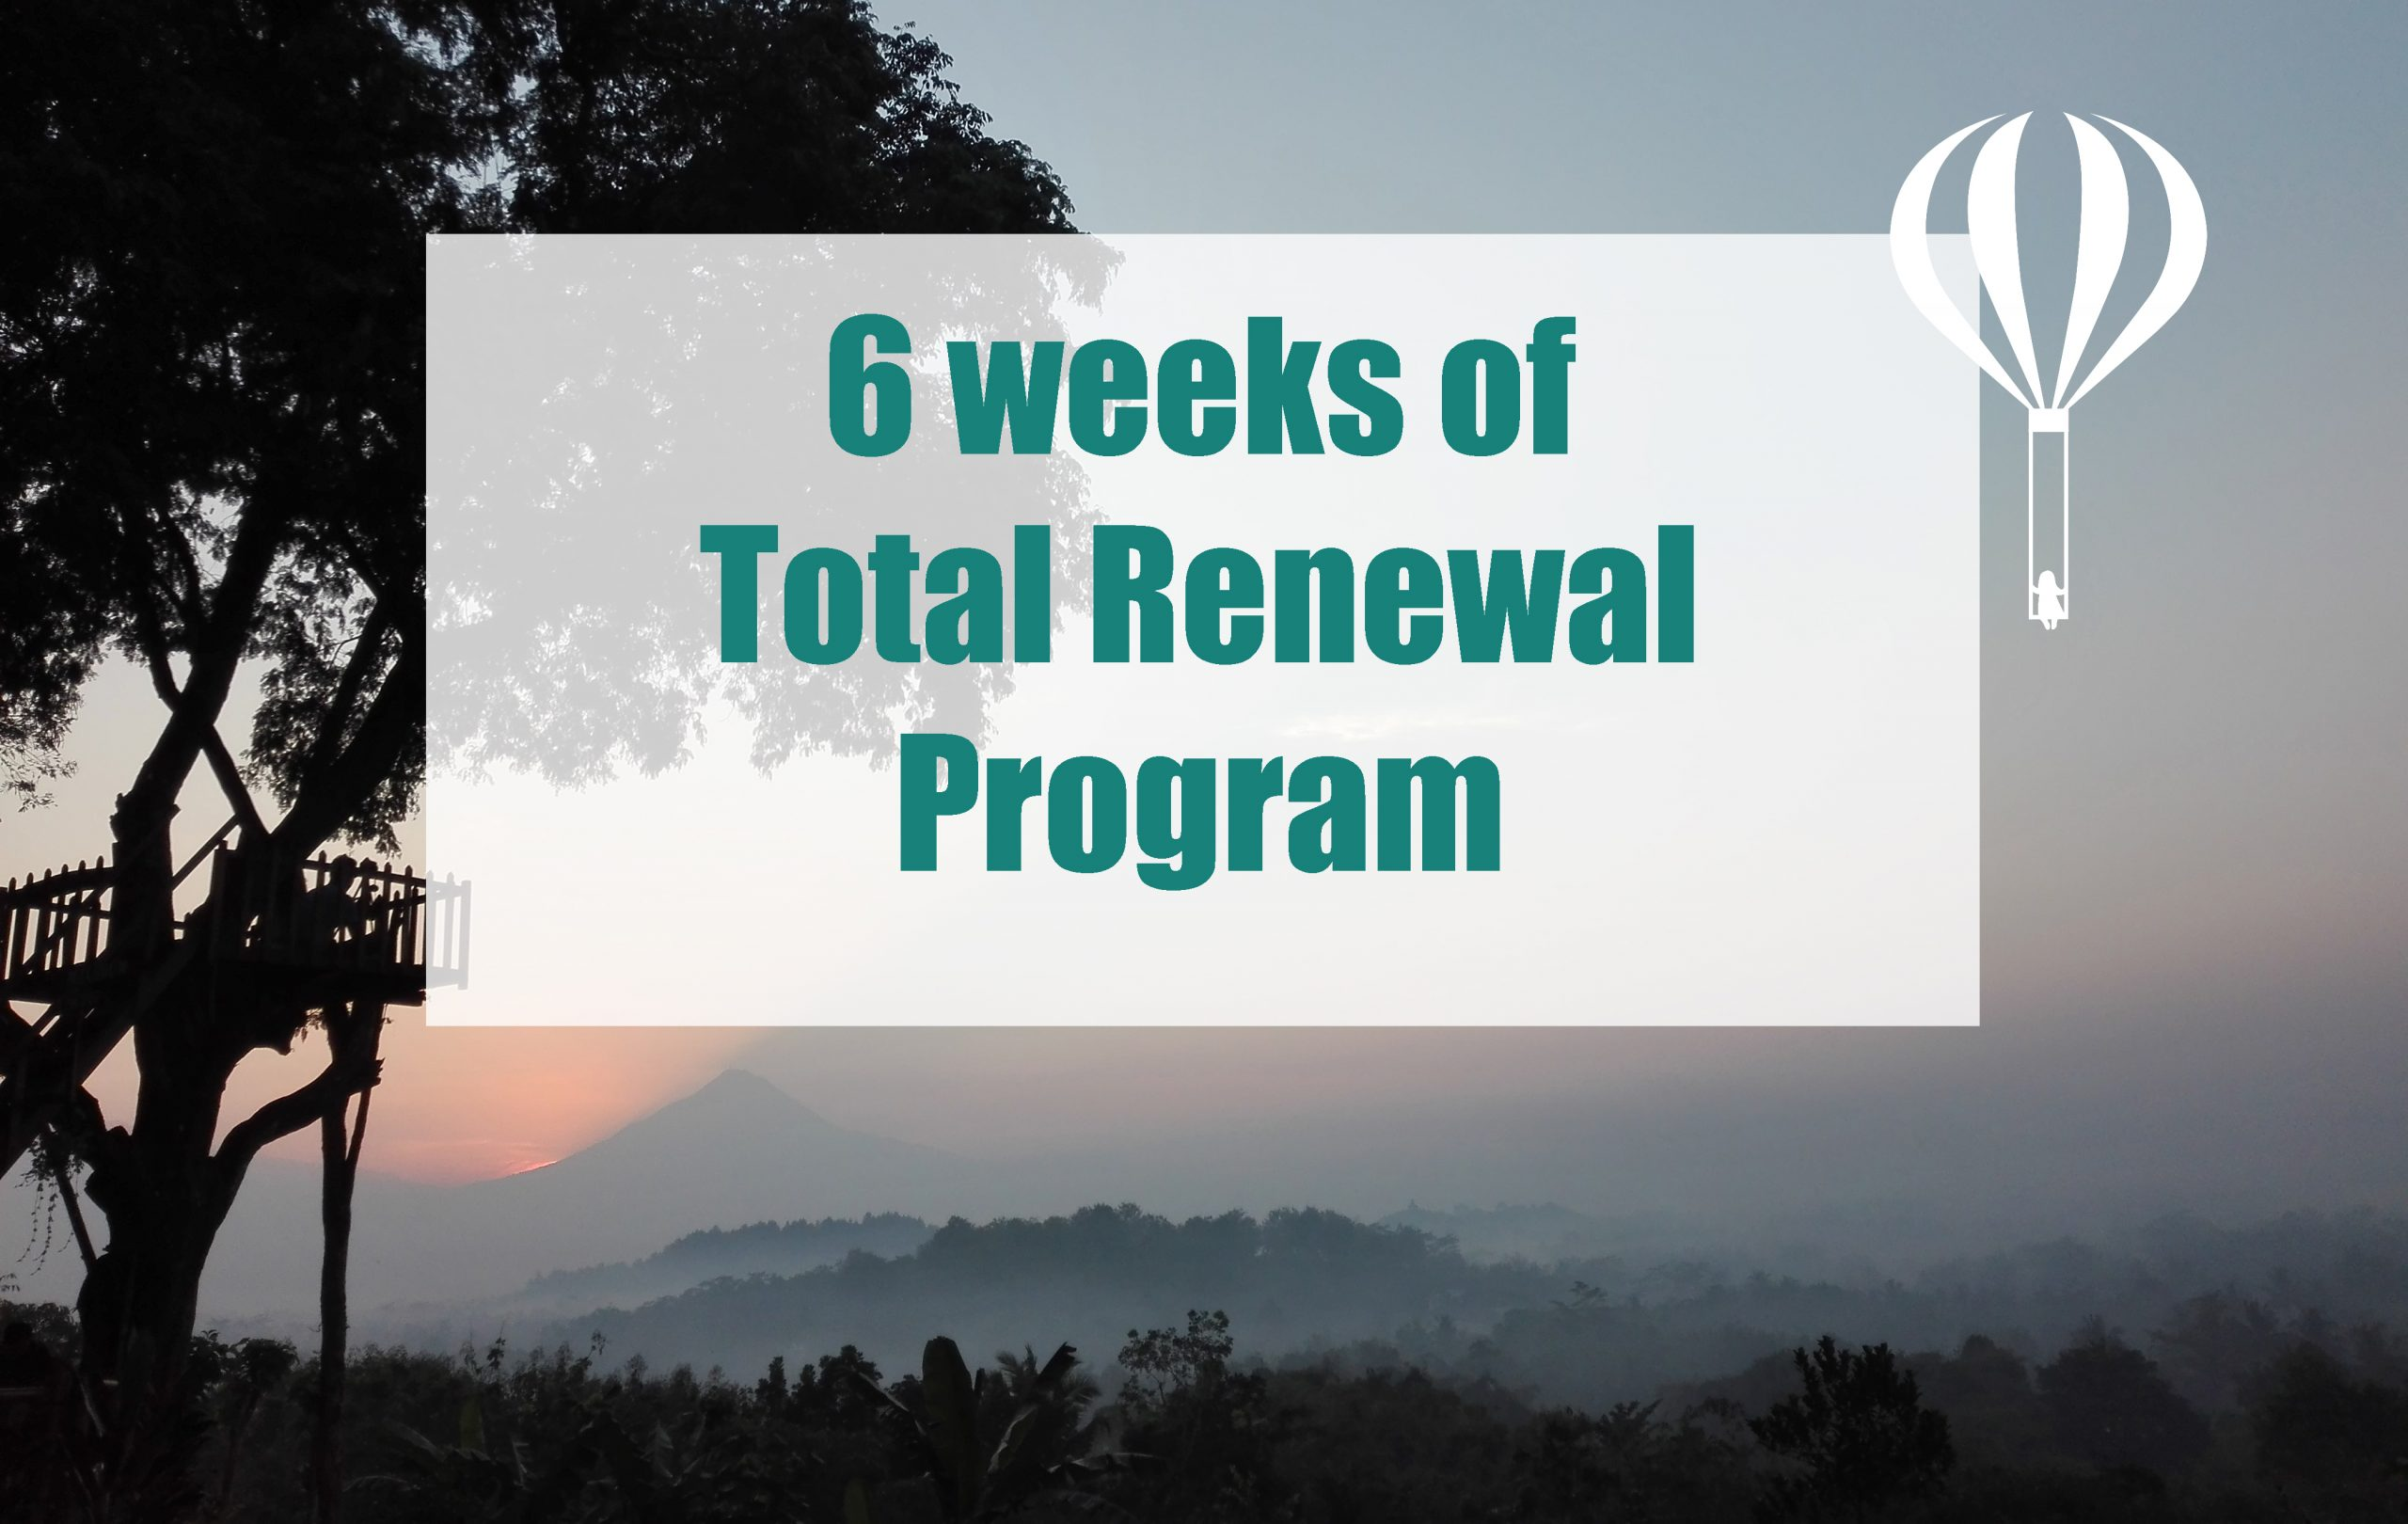 6 weeks of Total Renewal Program